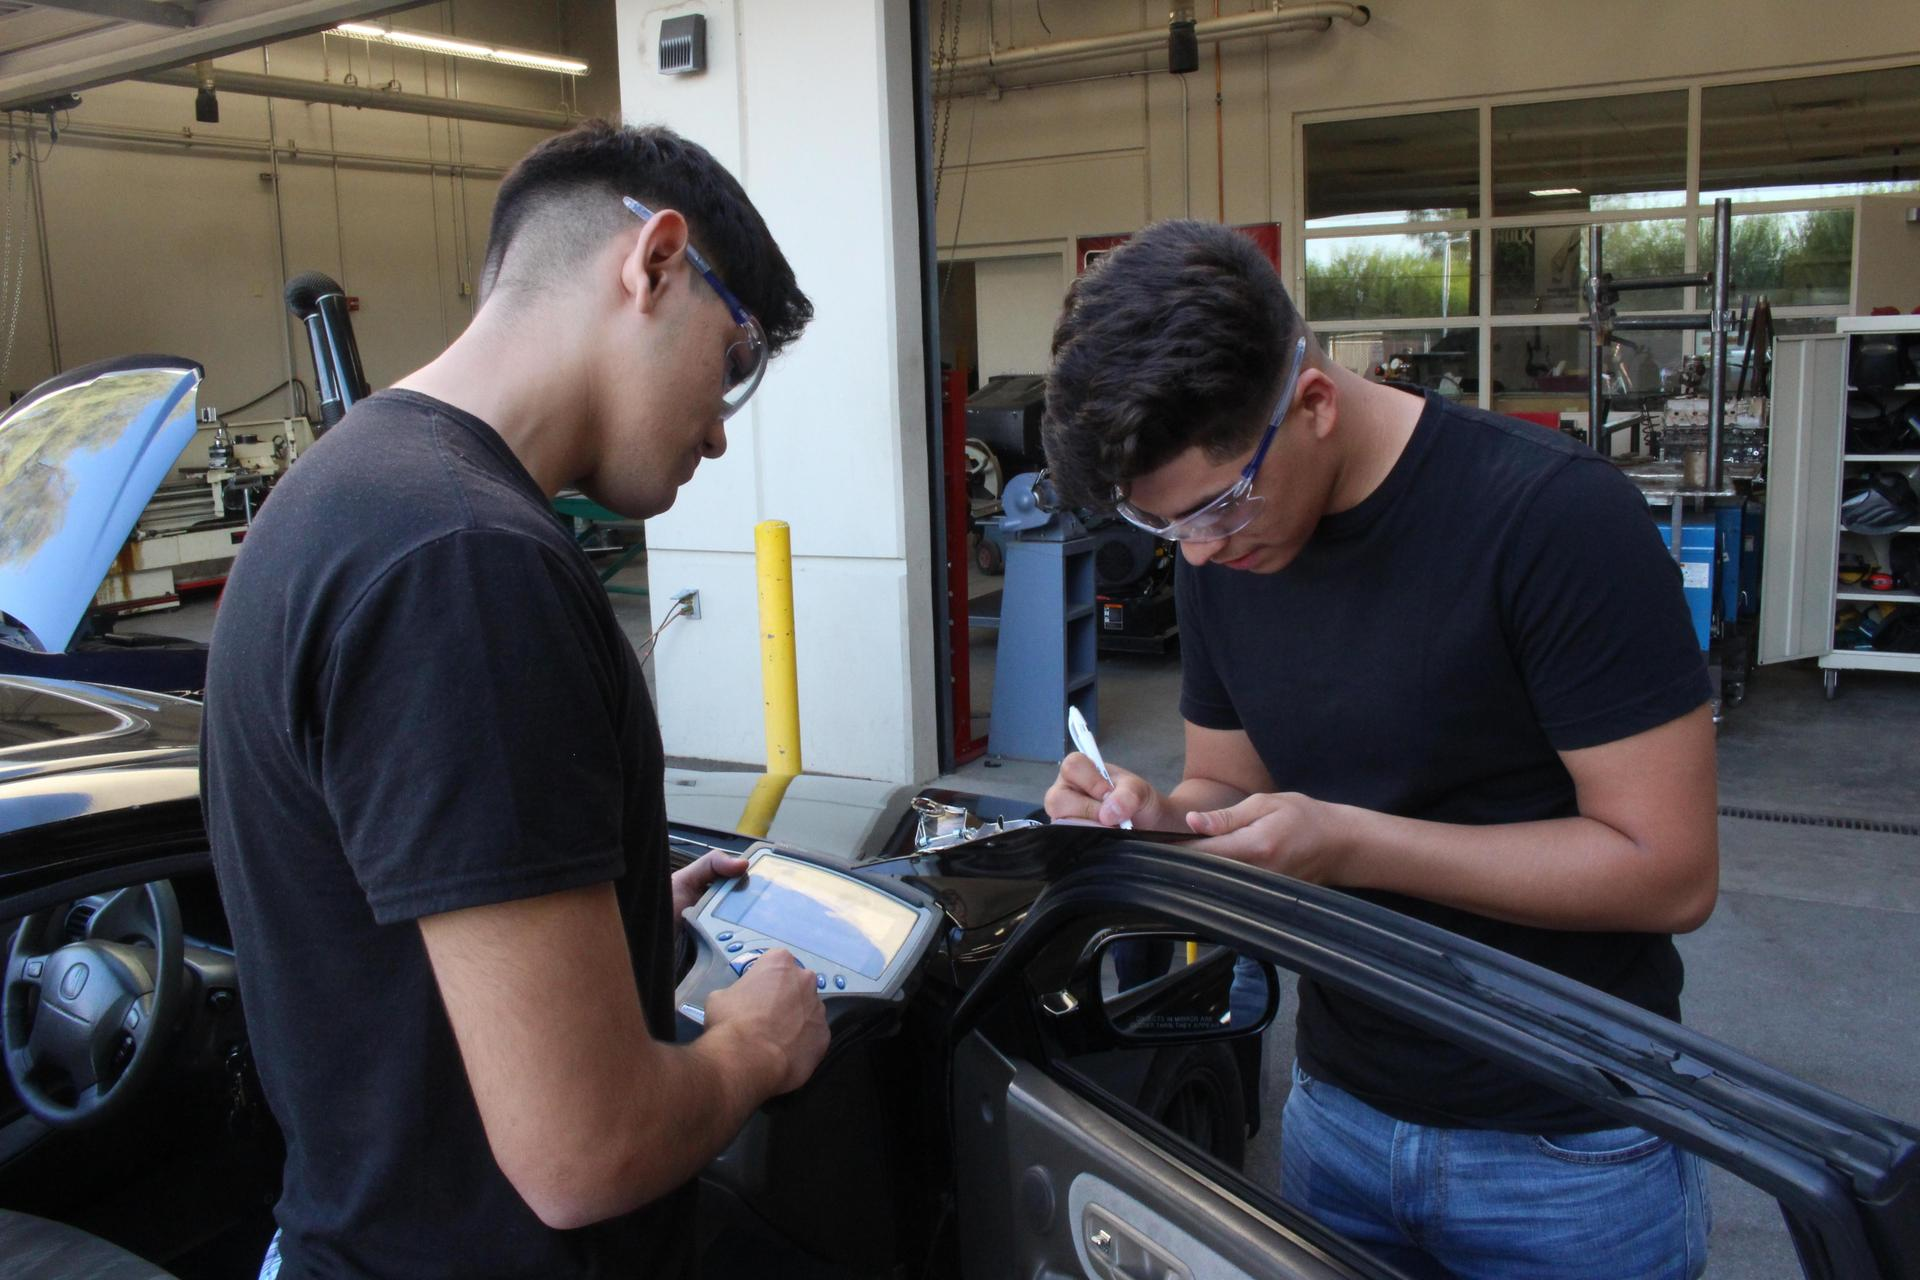 Two students working on taking measurements off a car